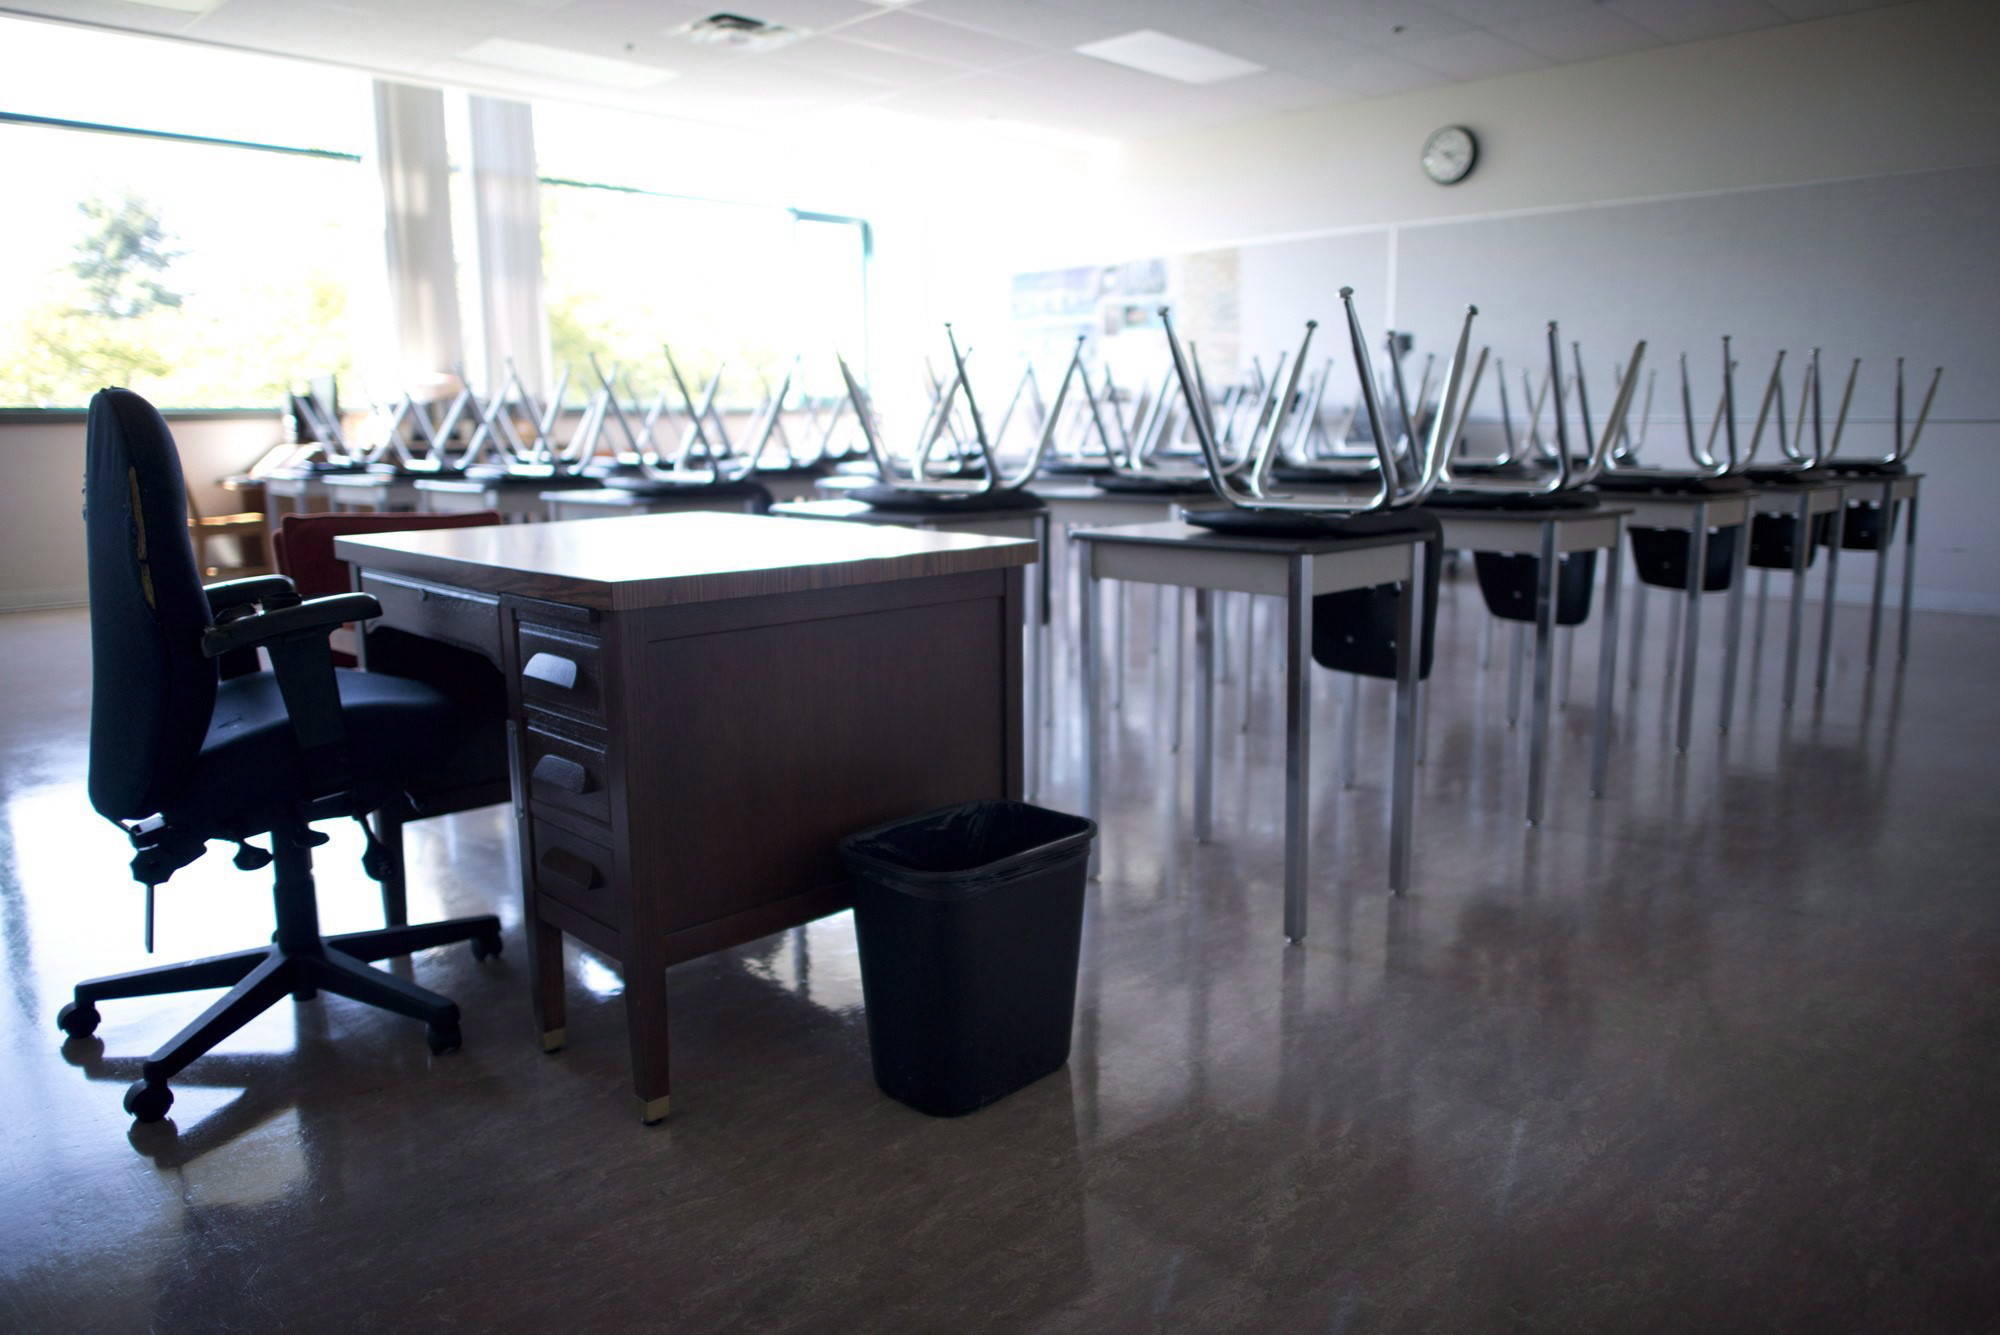 A empty teacher's desk is seen at the front of a empty classroom at McGee Secondary school in Vancouver on September 5, 2014. Many parents are figuring out daily plans on the homefront in the wake of school closures around the country.THE CANADIAN PRESS/Jonathan Hayward